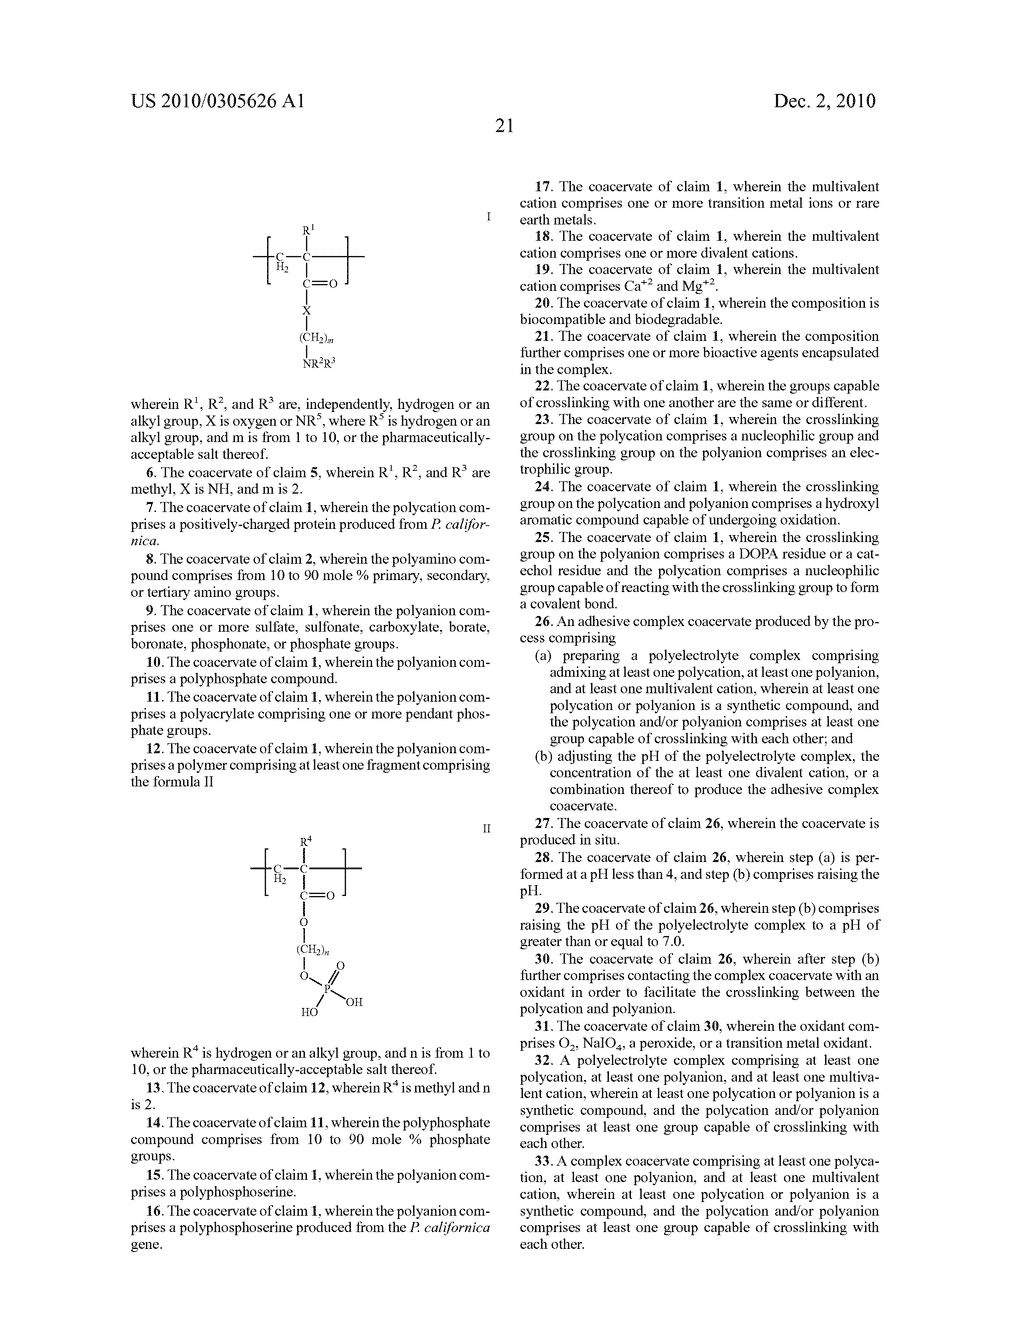 ADHESIVE COMPLEX COACERVATES AND METHODS OF MAKING AND USING THEREOF - diagram, schematic, and image 40